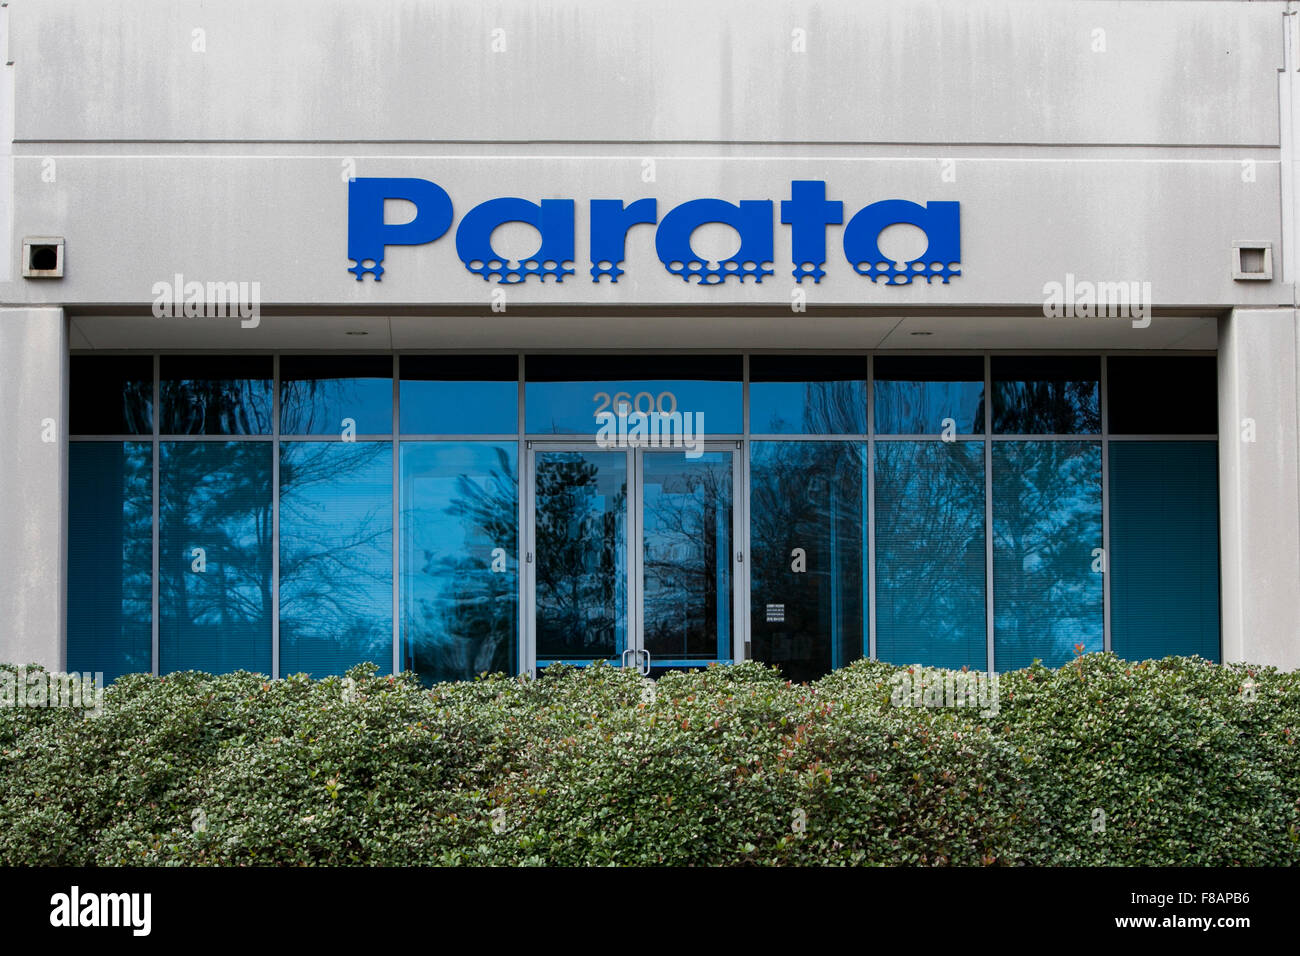 A logo sign outside of the headquarters of Parata Systems in Durham, North Carolina on November 29, 2015. - Stock Image